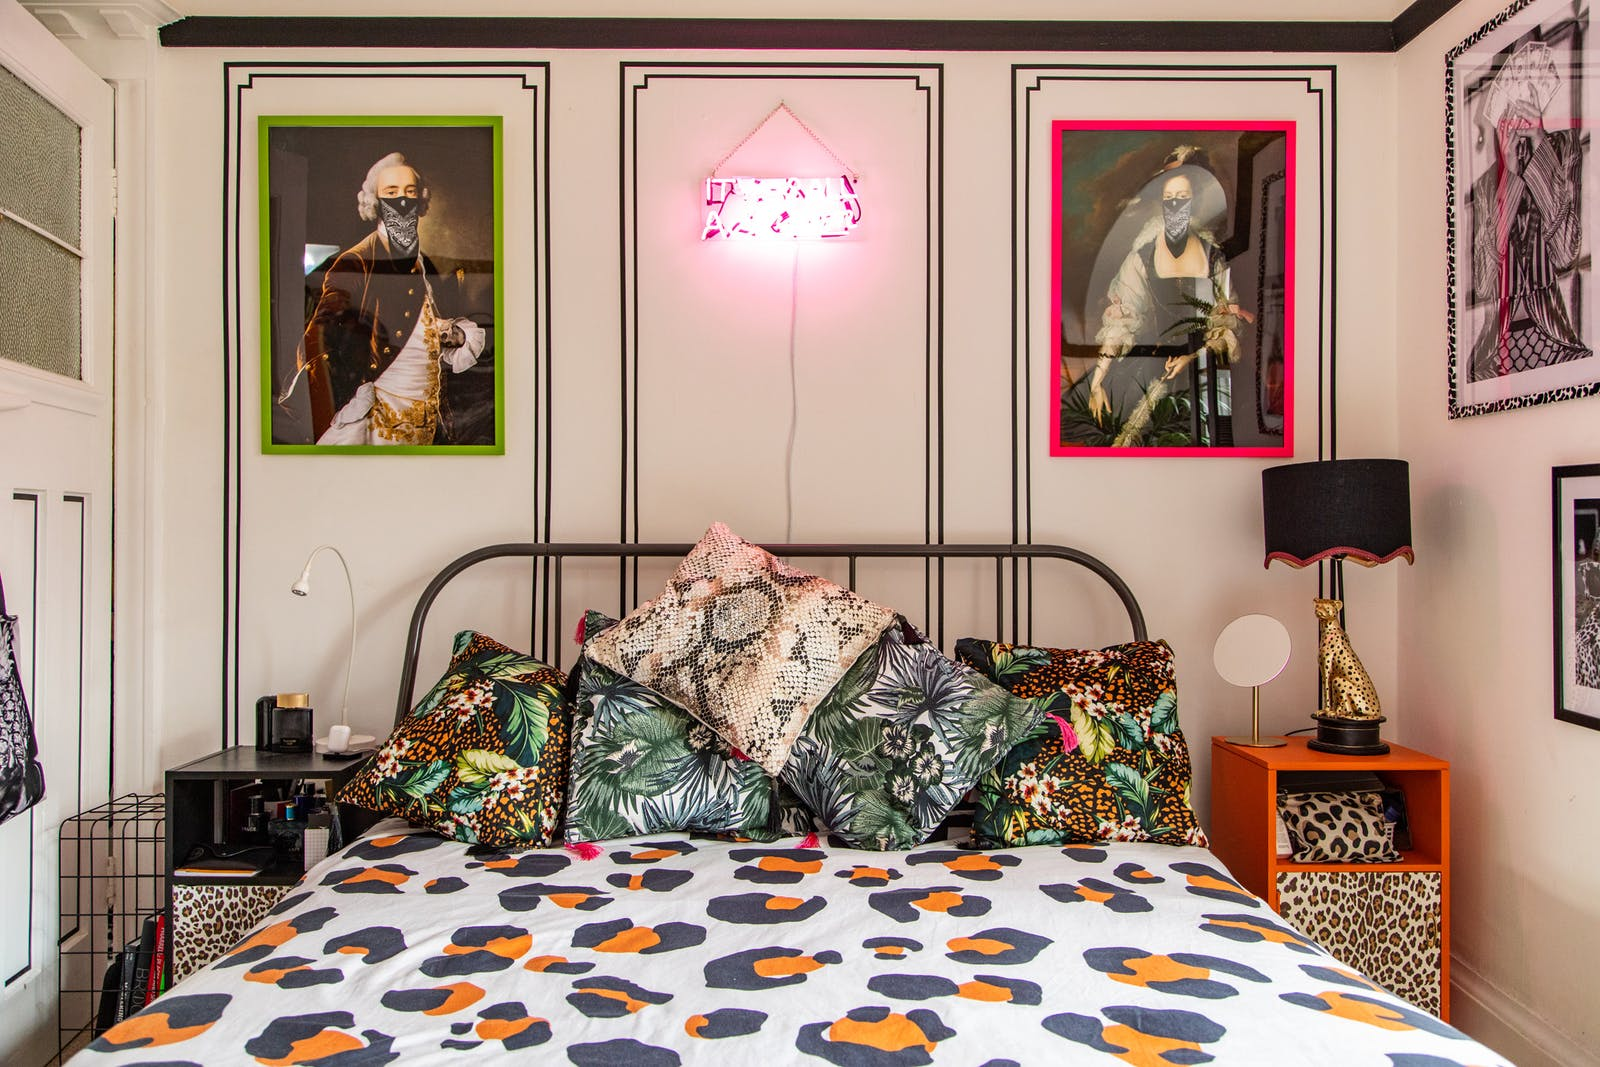 RHOI bedroom with neon light and animal print bed covers and side tables